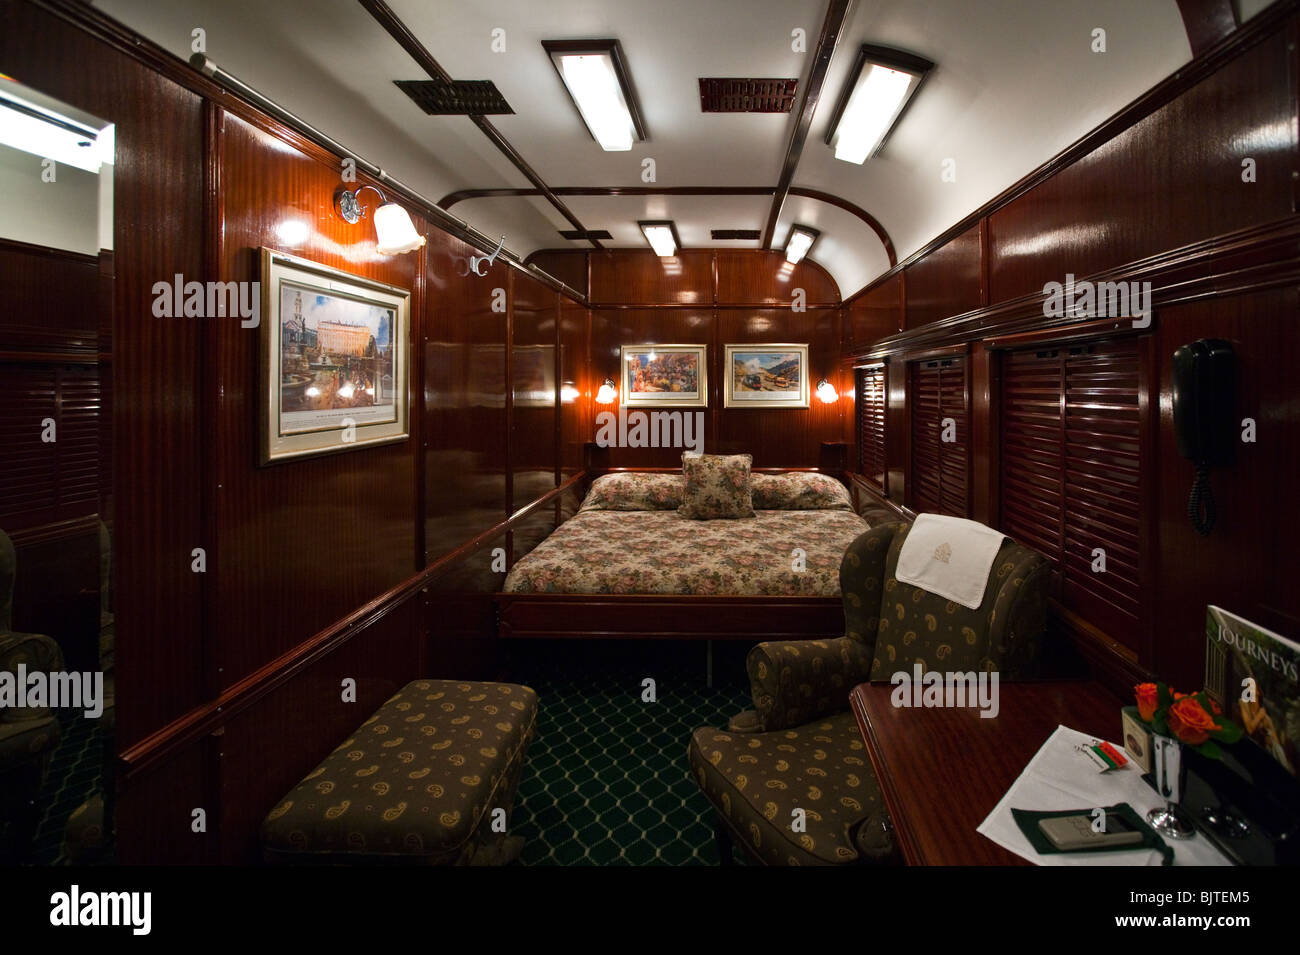 South Africa, a cabin of the Rovos Rail luxury train travelling between Cape Town and Pretoria - Stock Image